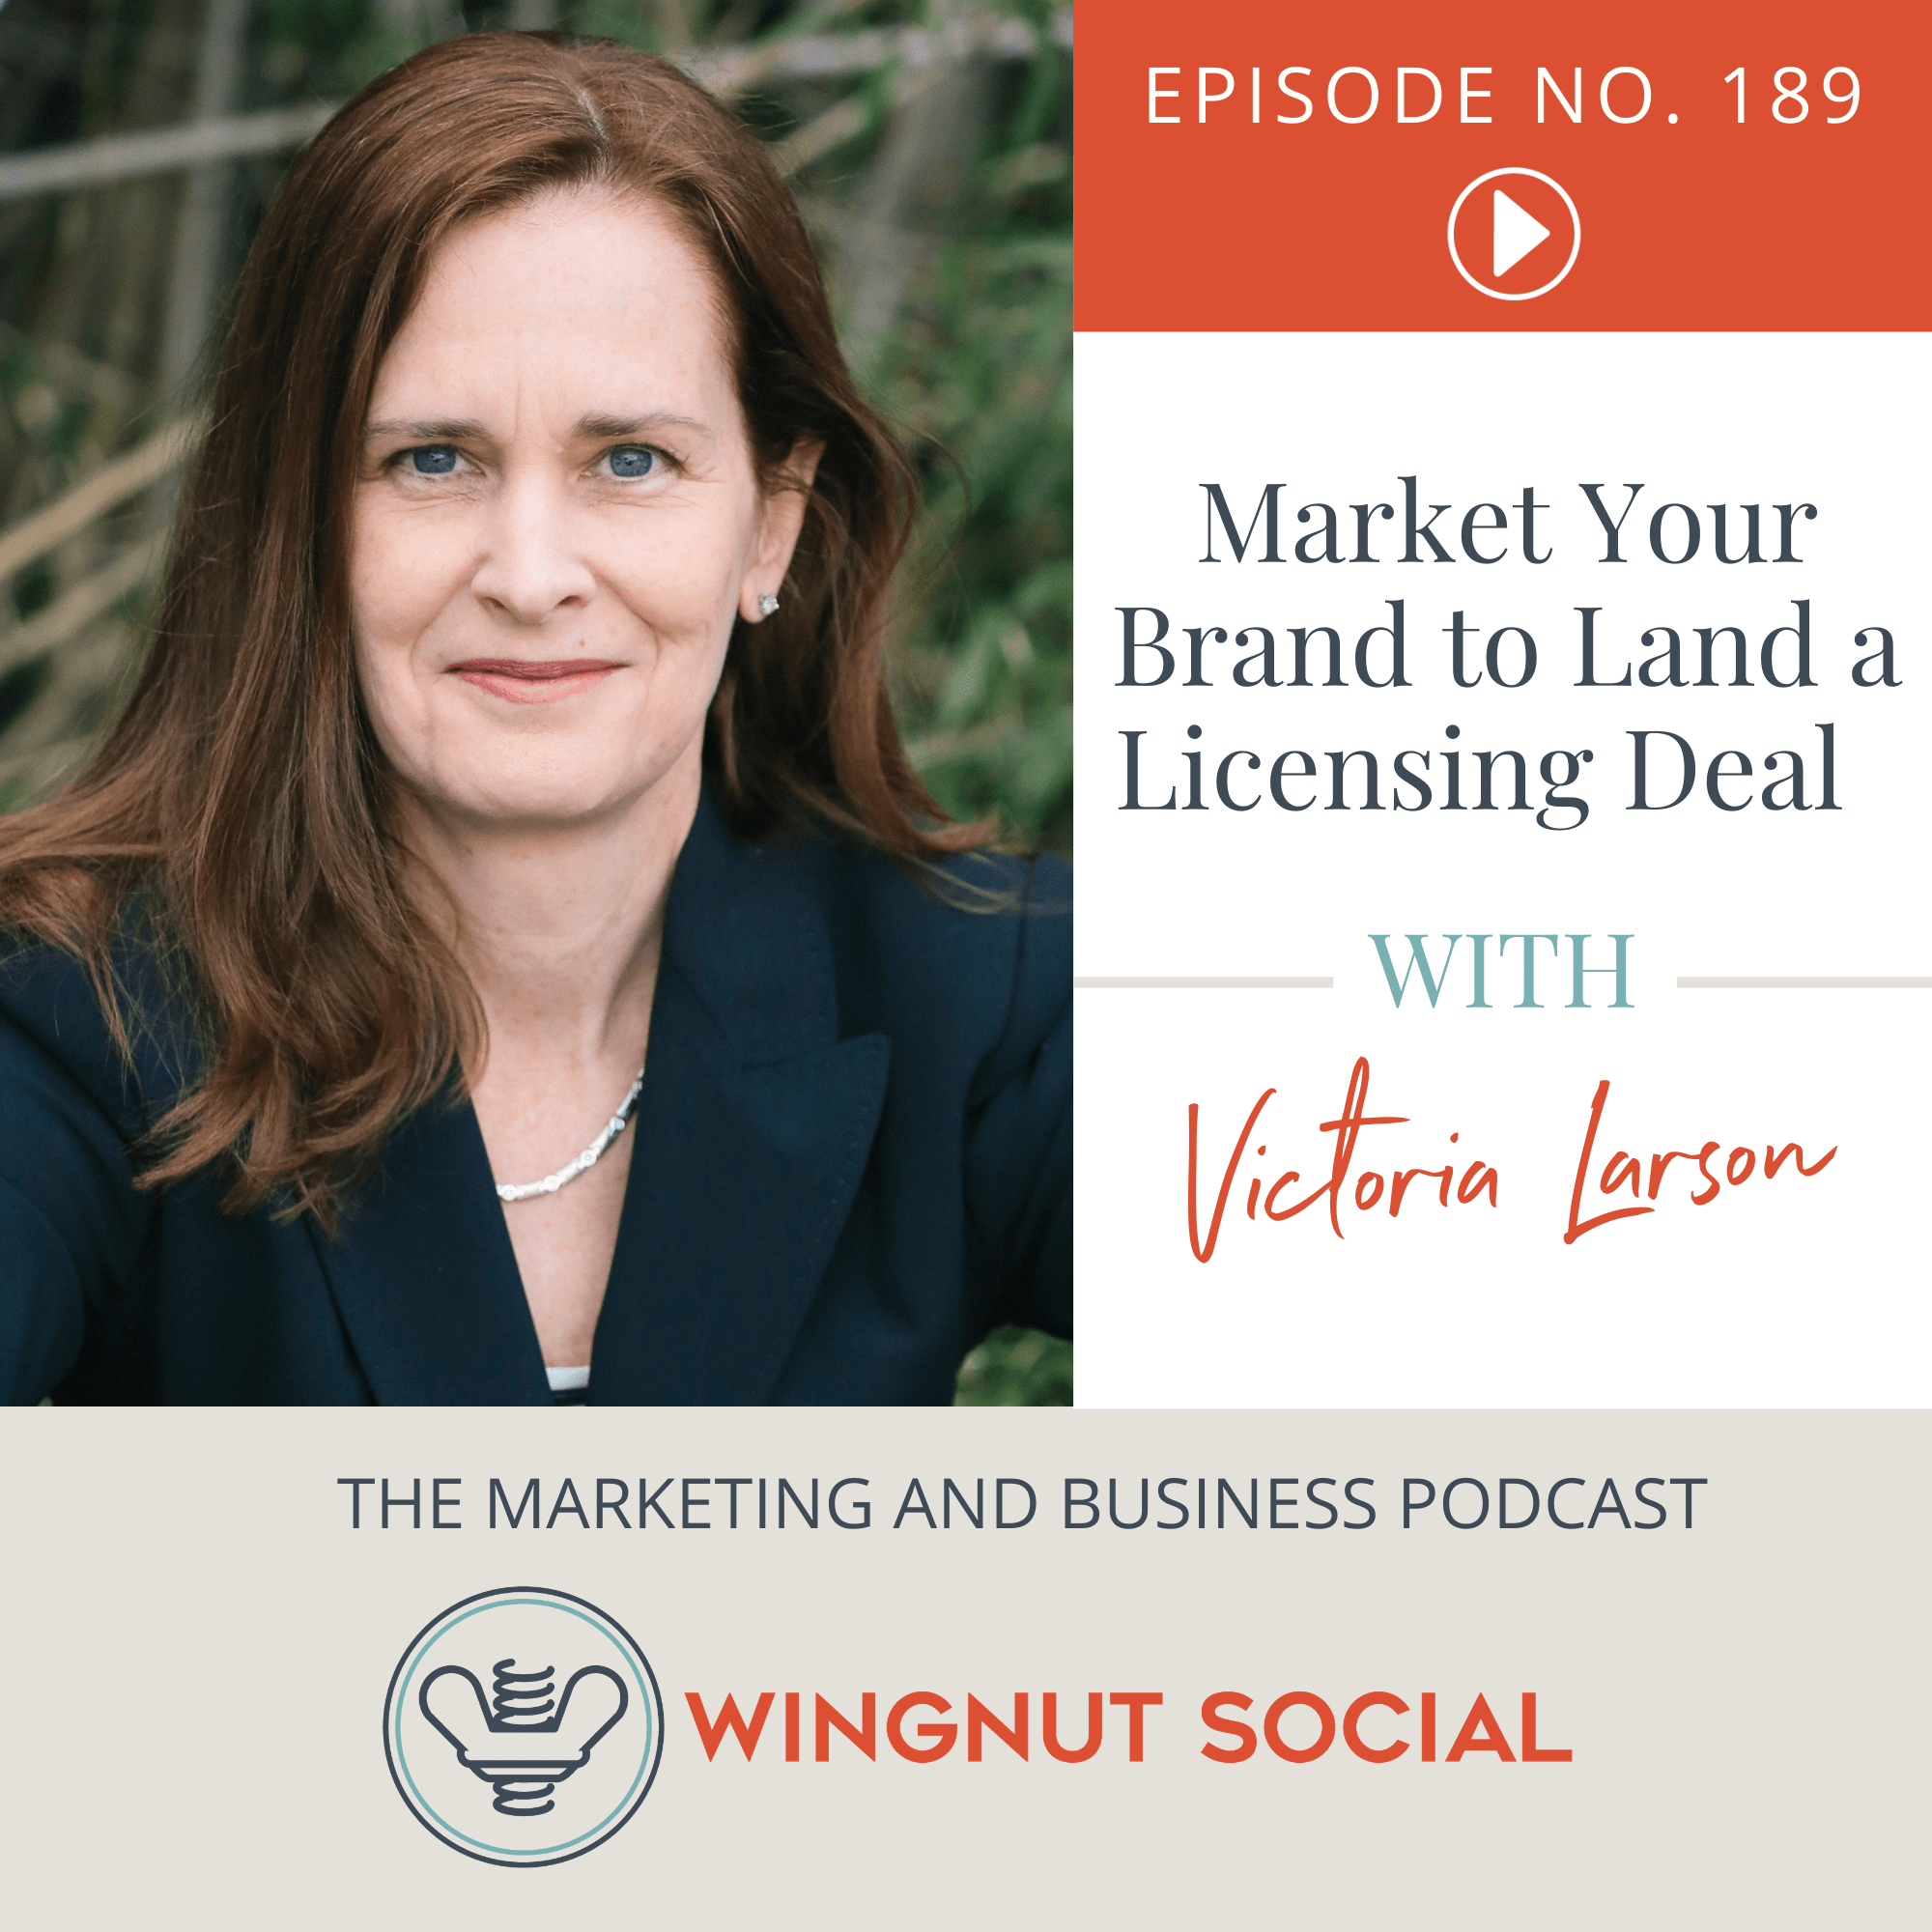 Market Your Brand to Land a Licensing Deal [Victoria Larson's Strategy] - Episode 189